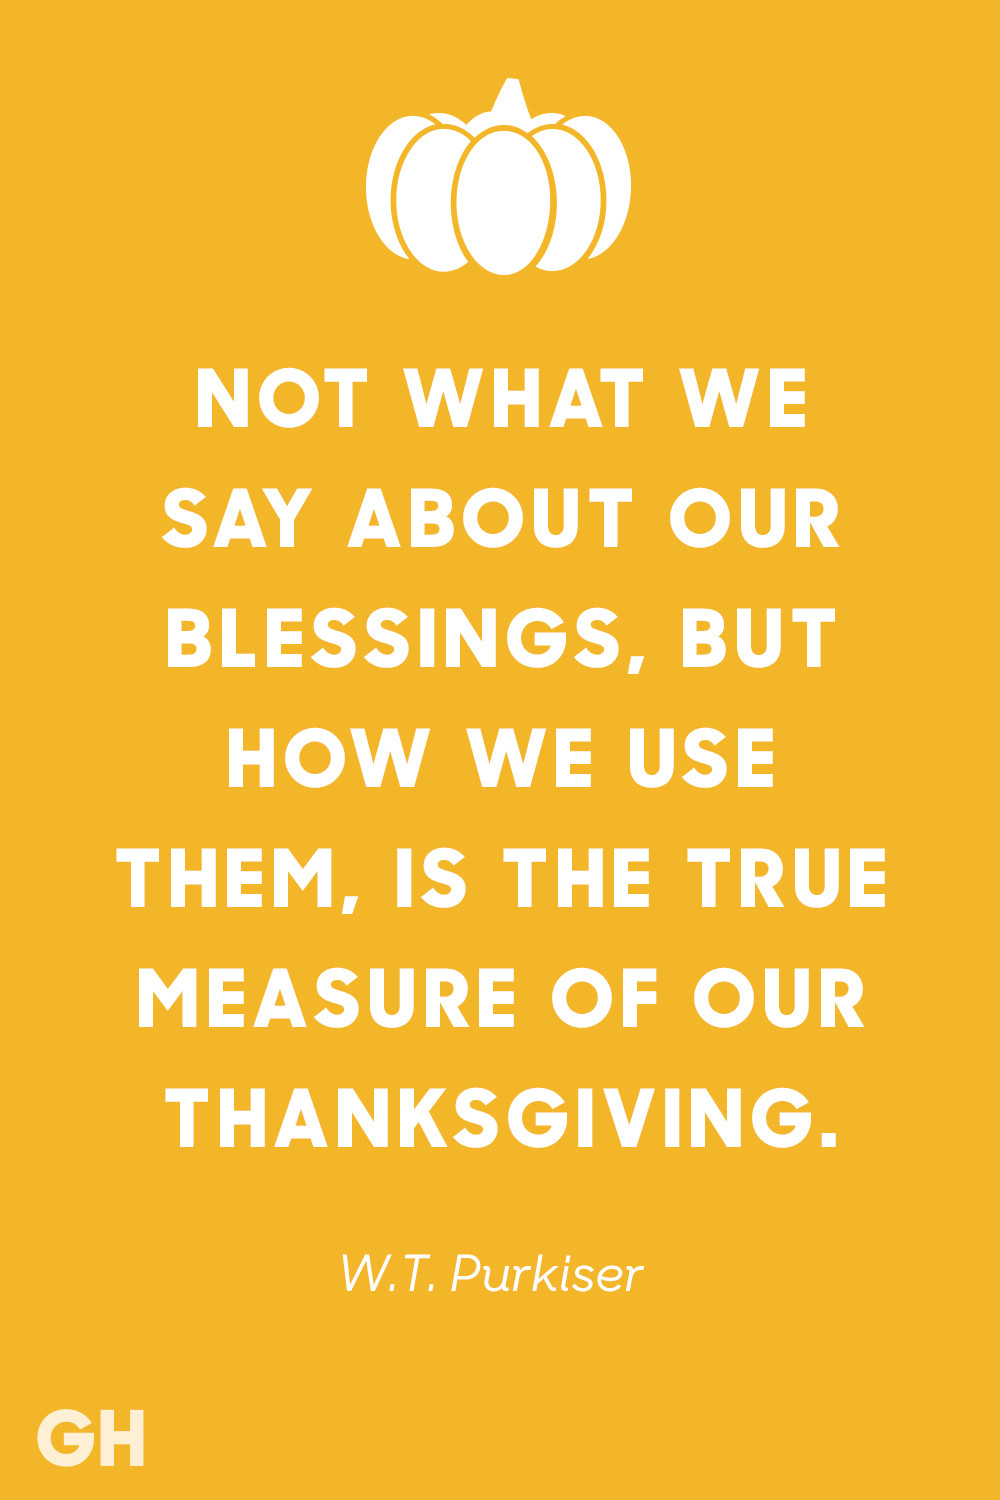 Thanksgiving Turkey Quotes  15 Best Thanksgiving Quotes Inspirational and Funny